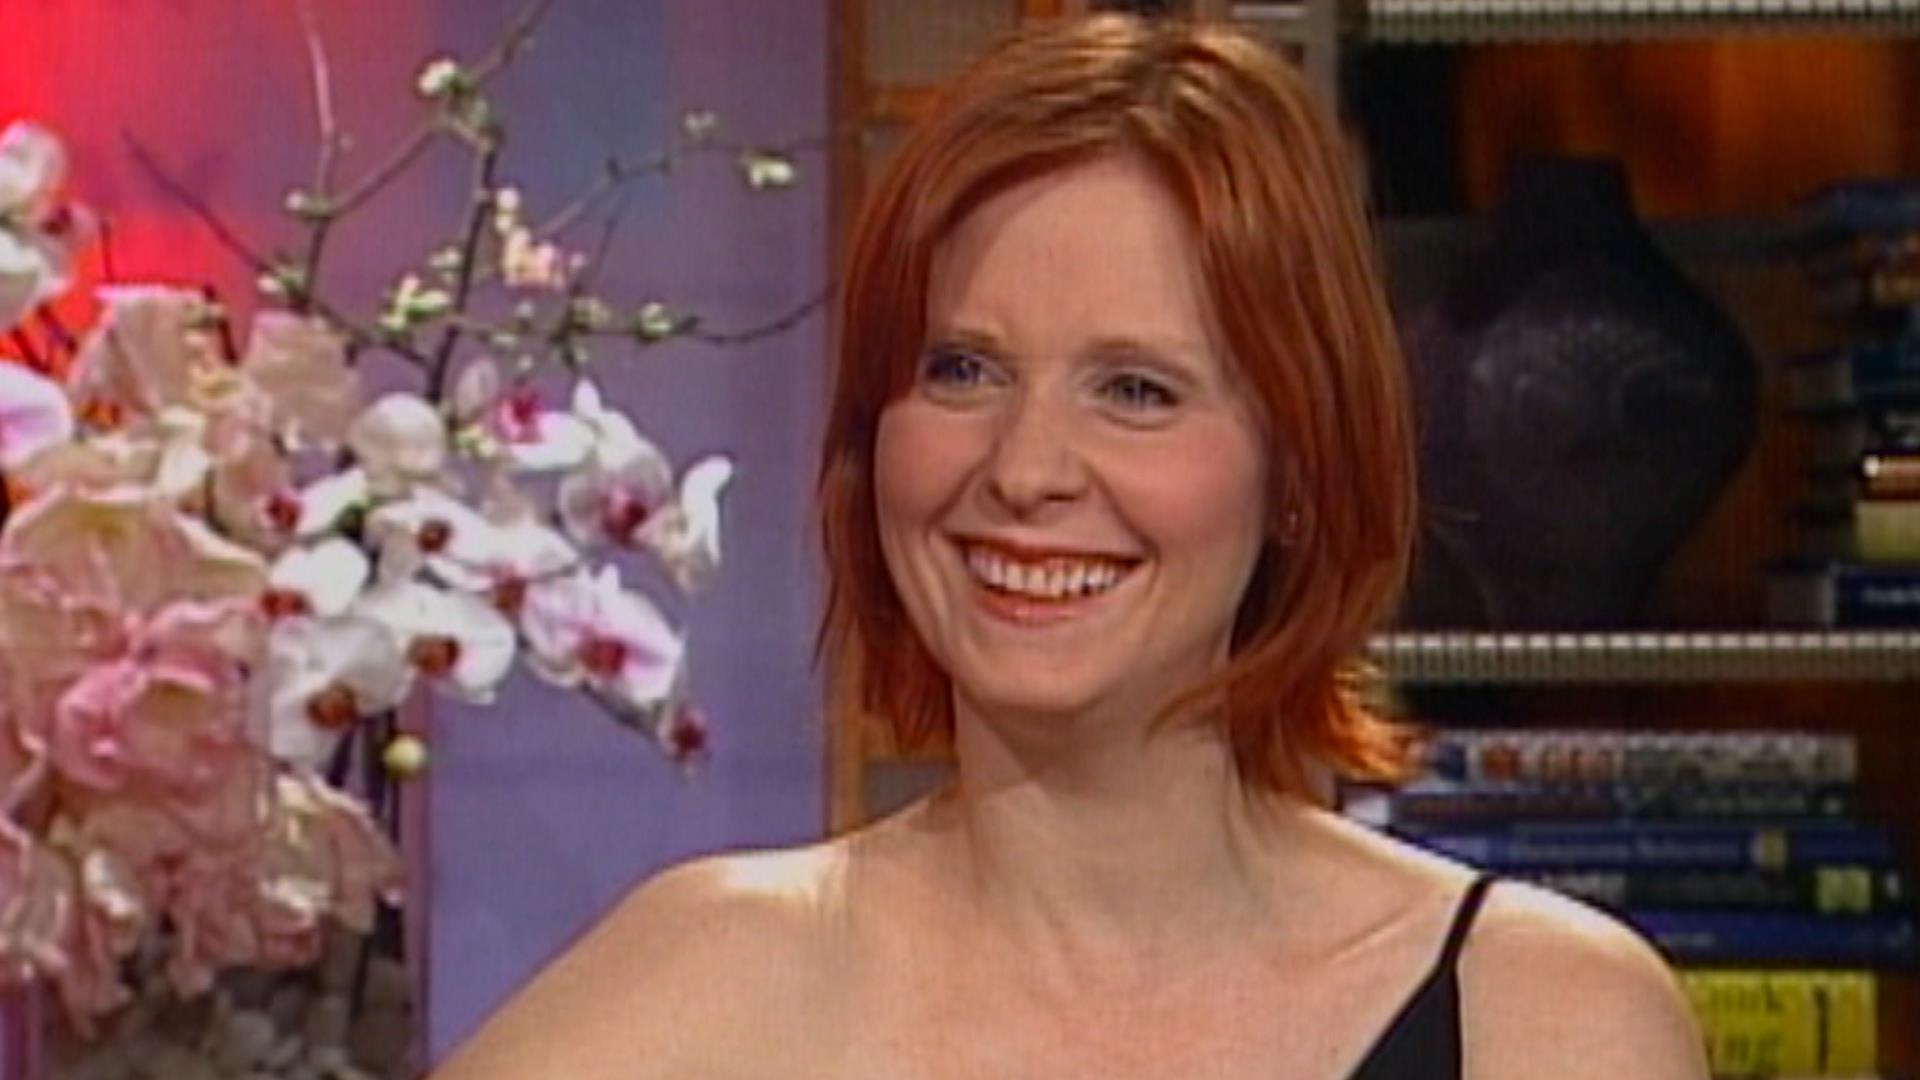 Flashback! Cynthia Nixon Talks 'Sex and the City' Finale on TODAY in 2004